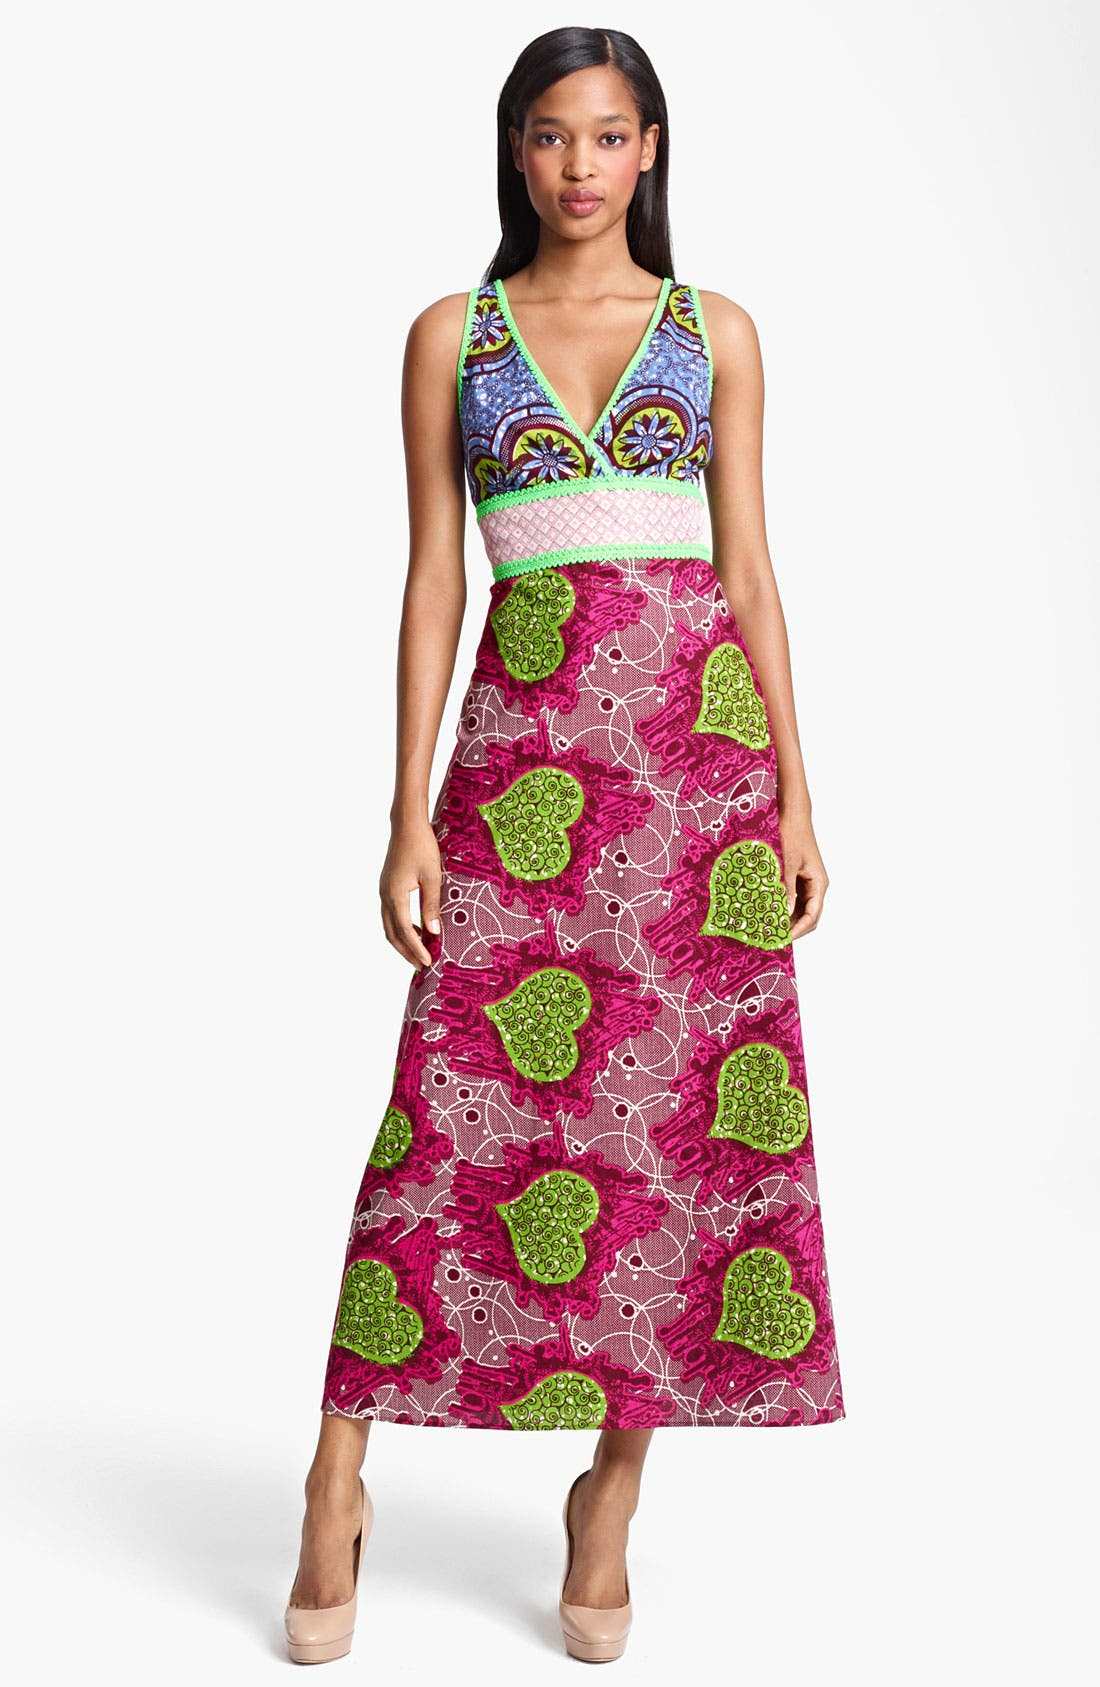 Alternate Image 1 Selected - Moschino Cheap & Chic Floral Print Dress